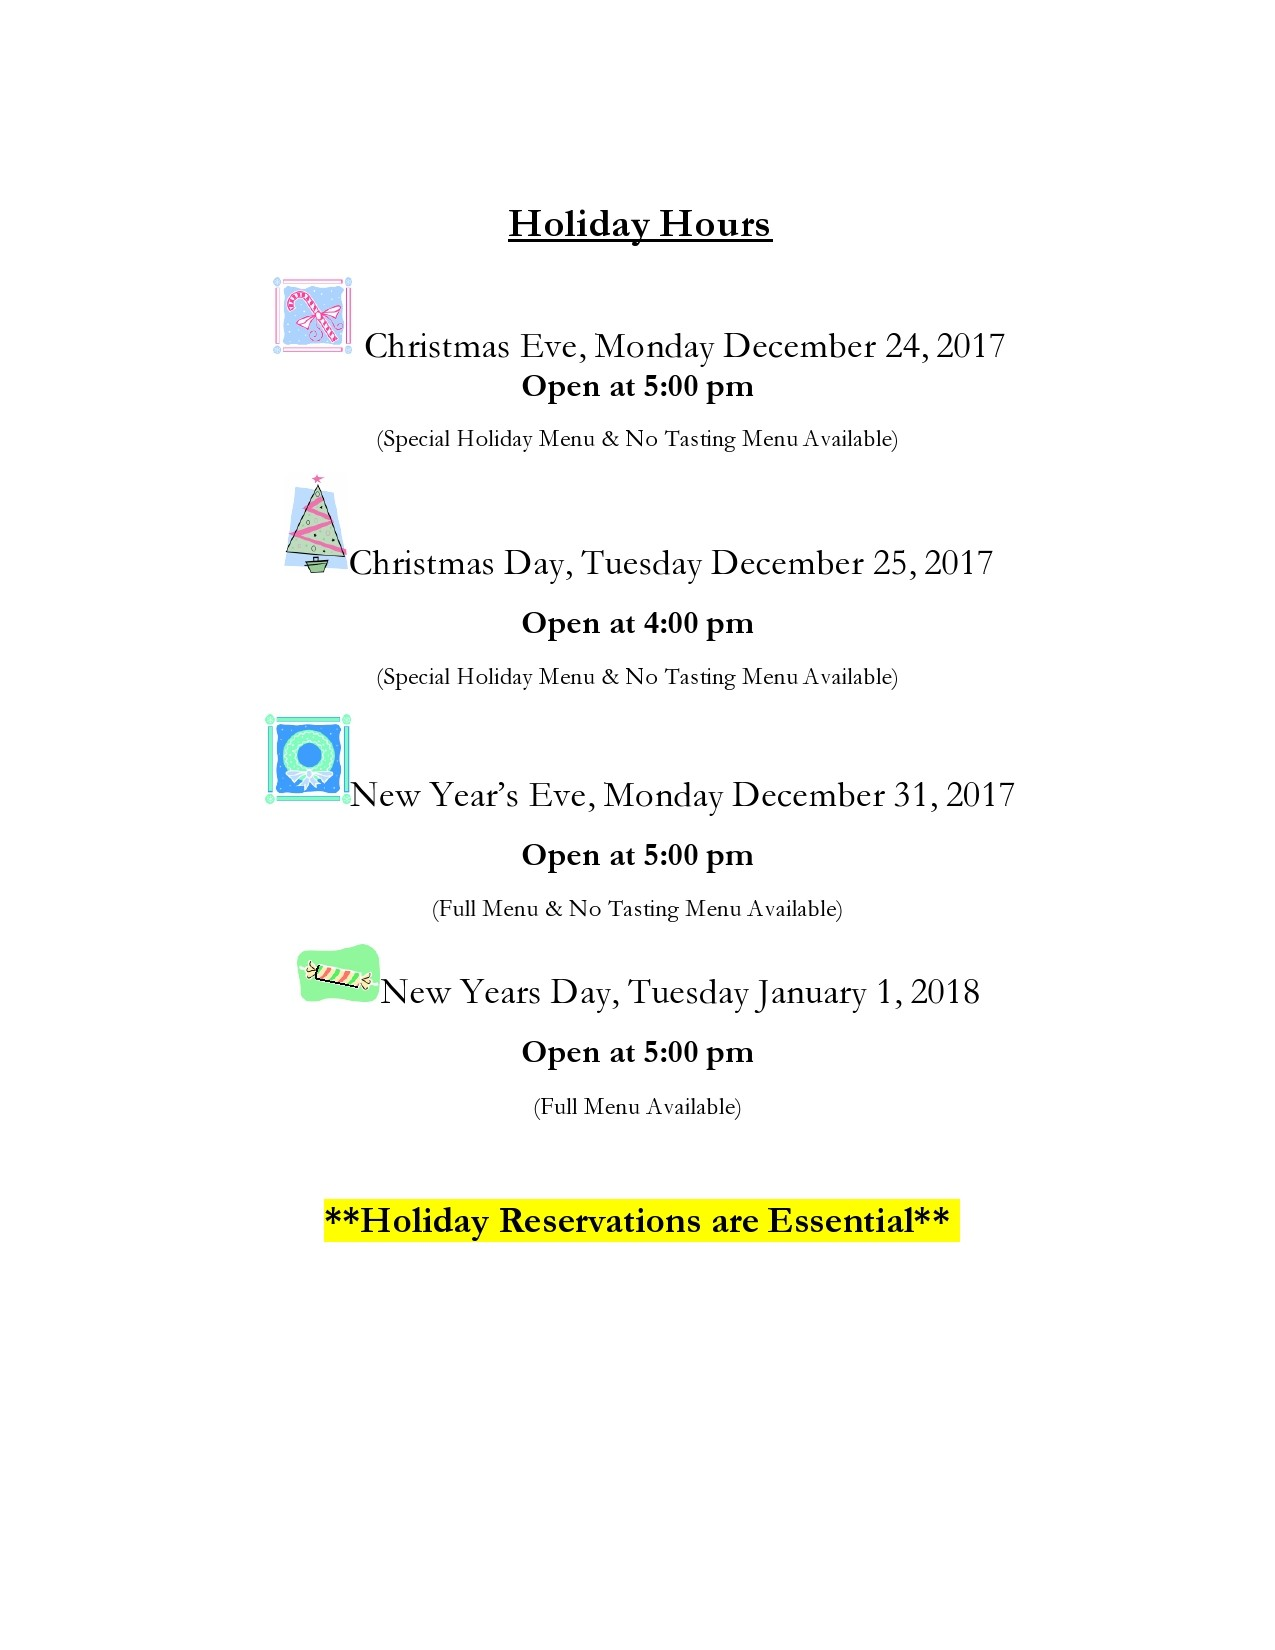 Free business hours template 16